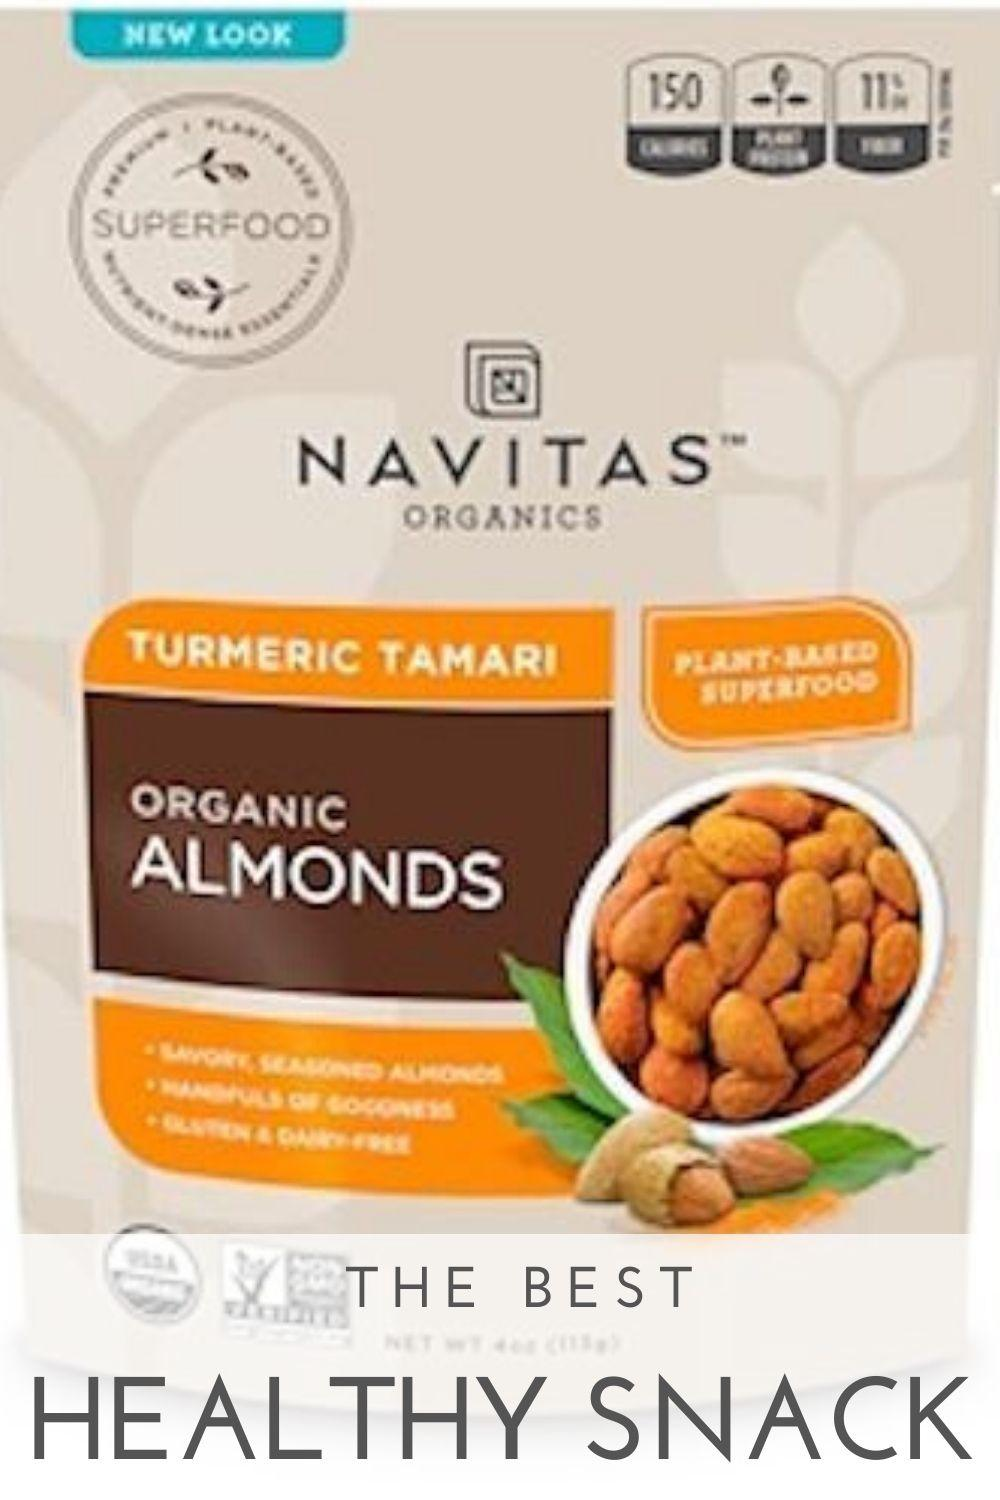 Navitas Turmeric and Tamari Almonds graphic